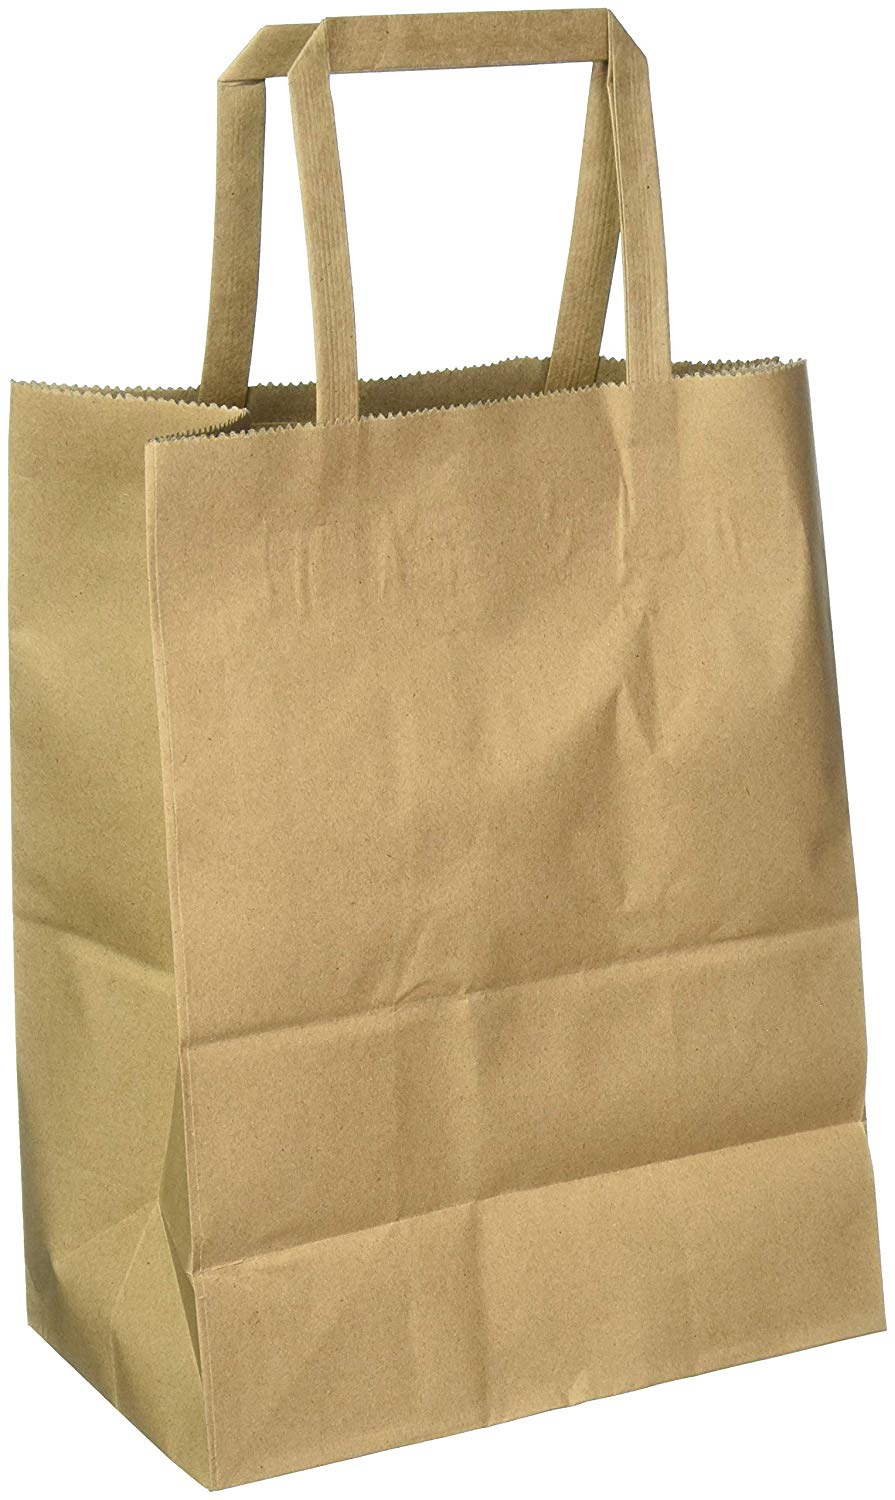 Thick Paper White Kraft Bags with Handles 8x4.75x10 Inch 25 Pack Bagmad Medium Shopping Paper Bags,Natural Party Retail Gift Craft Bags 25Pcs Count